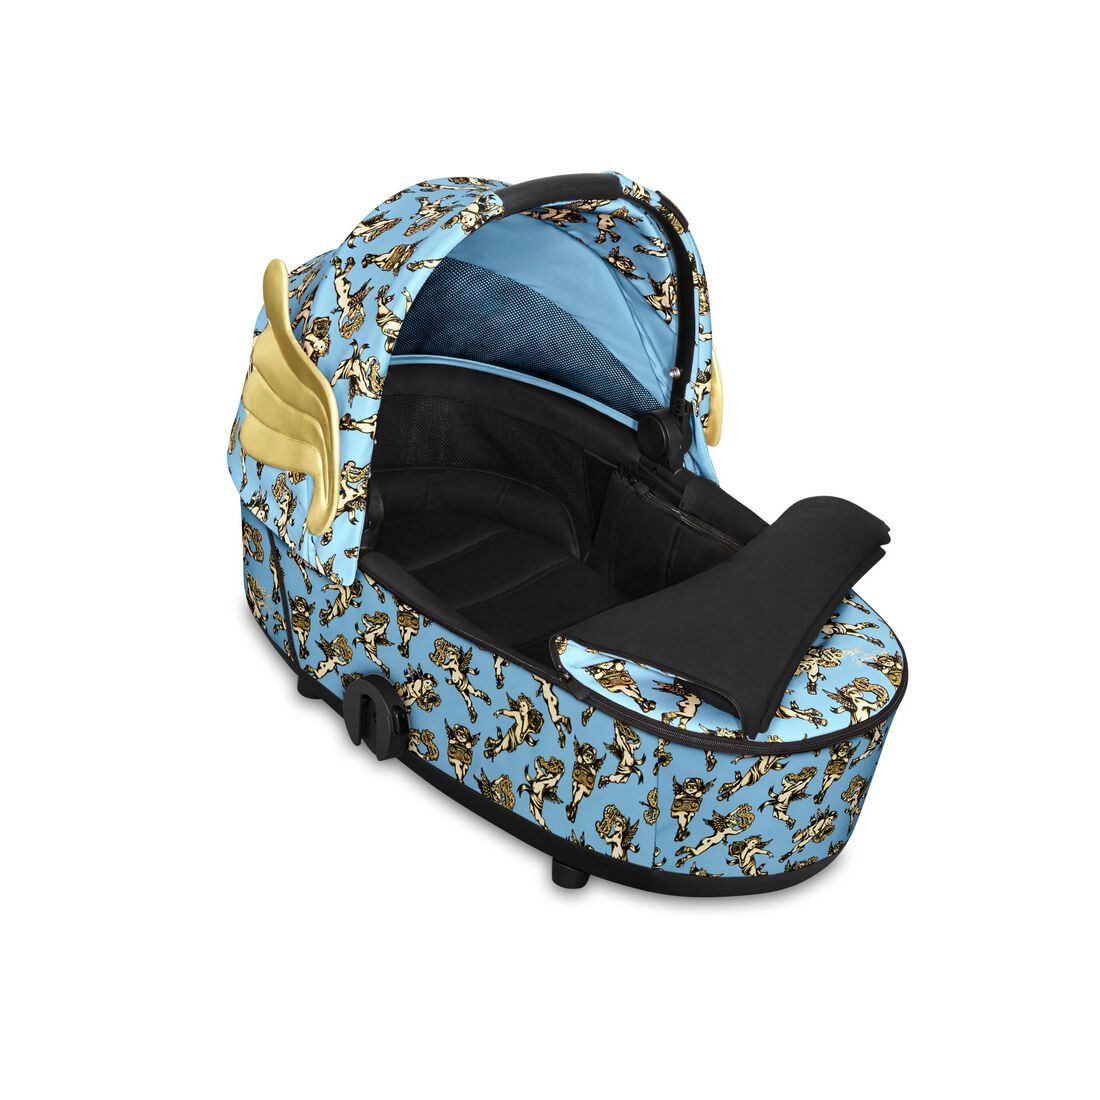 CYBEX Mios Lux Carry Cot - Cherubs Blue in Cherubs Blue large image number 2